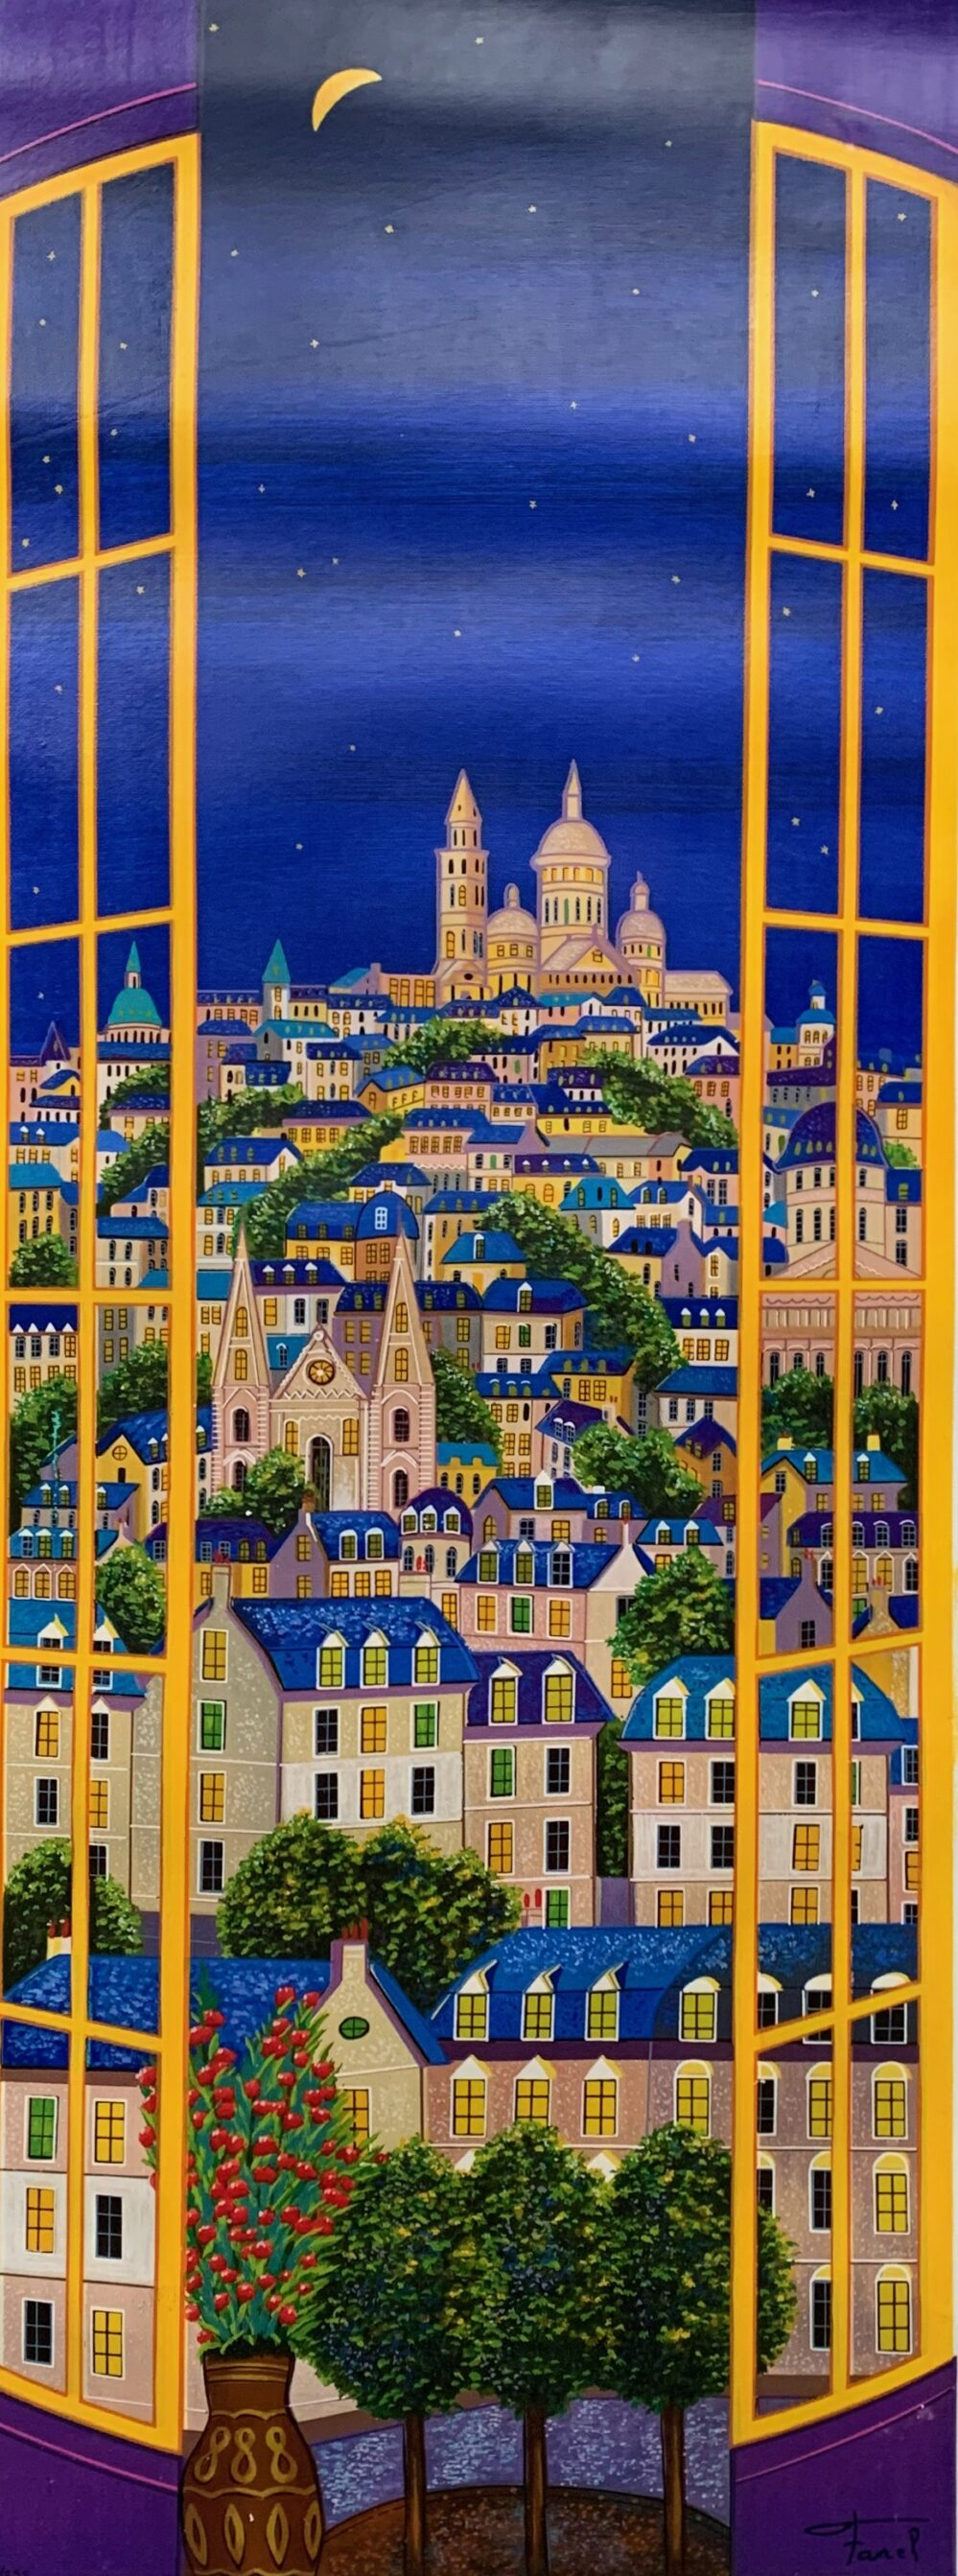 FANCH LEDAN Window on Paris Hand Signed Limited Edition Serigraph on Canvas